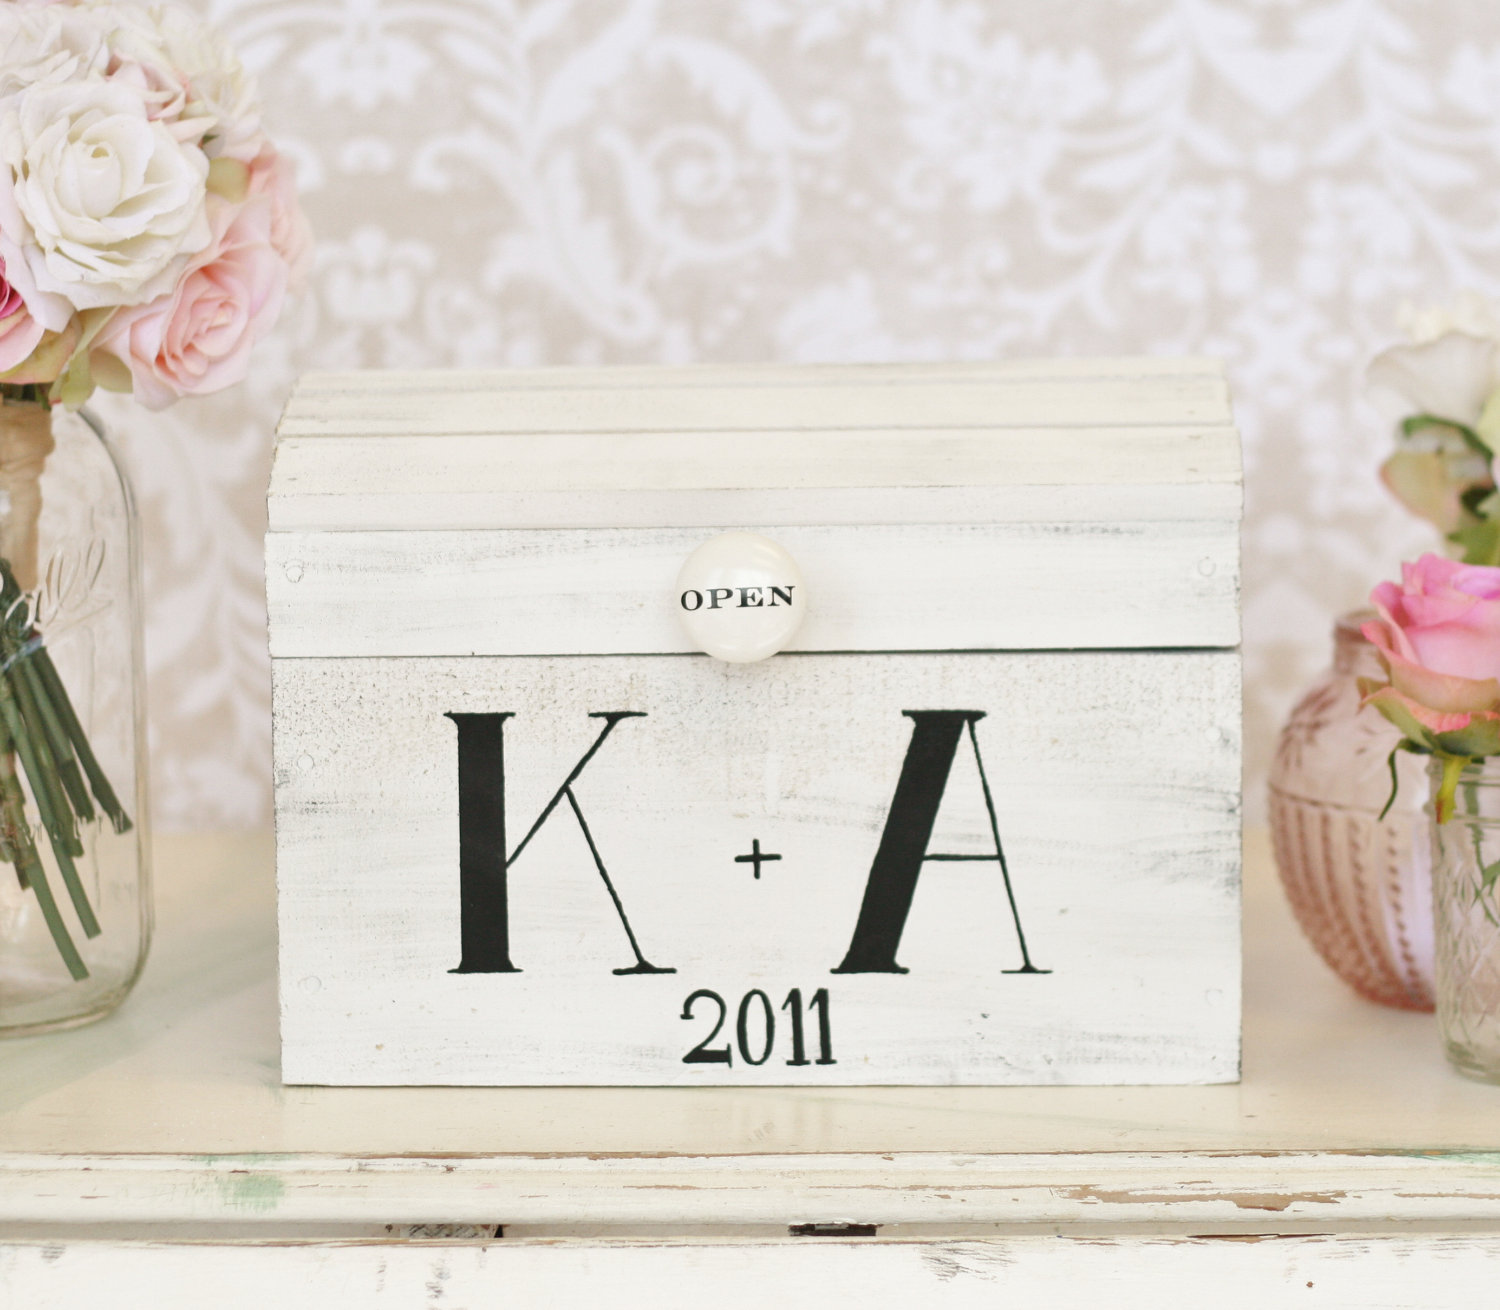 Vintage Wedding Gift Card Boxes : Wedding Card Boxes Our Favorite Etsy Finds of the Year POPSUGAR ...